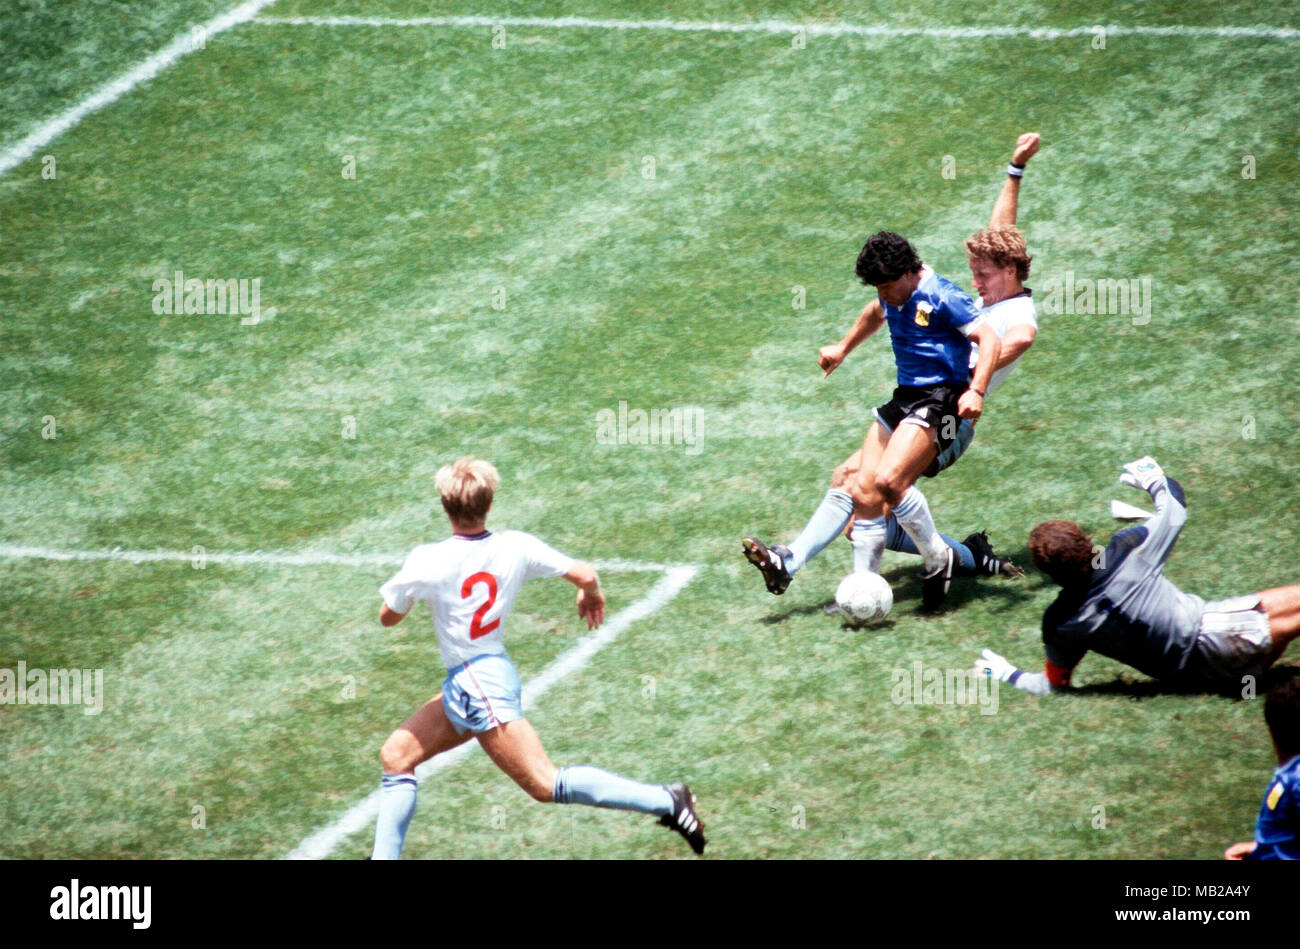 FIFA World Cup - Mexico 1986 22.6.1986, Estadio Azteca, Mexico, D.F. Quarter-final Argentina v England. Diego Maradona scores the greatest goal the World Cup has ever seen, 2-0 against England.  6 - Maradona has gone past gaolkeeper Peter Shilton and Terry Butcher is late, as Diego's lethal left foot slides the ball in to the net. England number 2 is Gary Stevens. - Stock Image